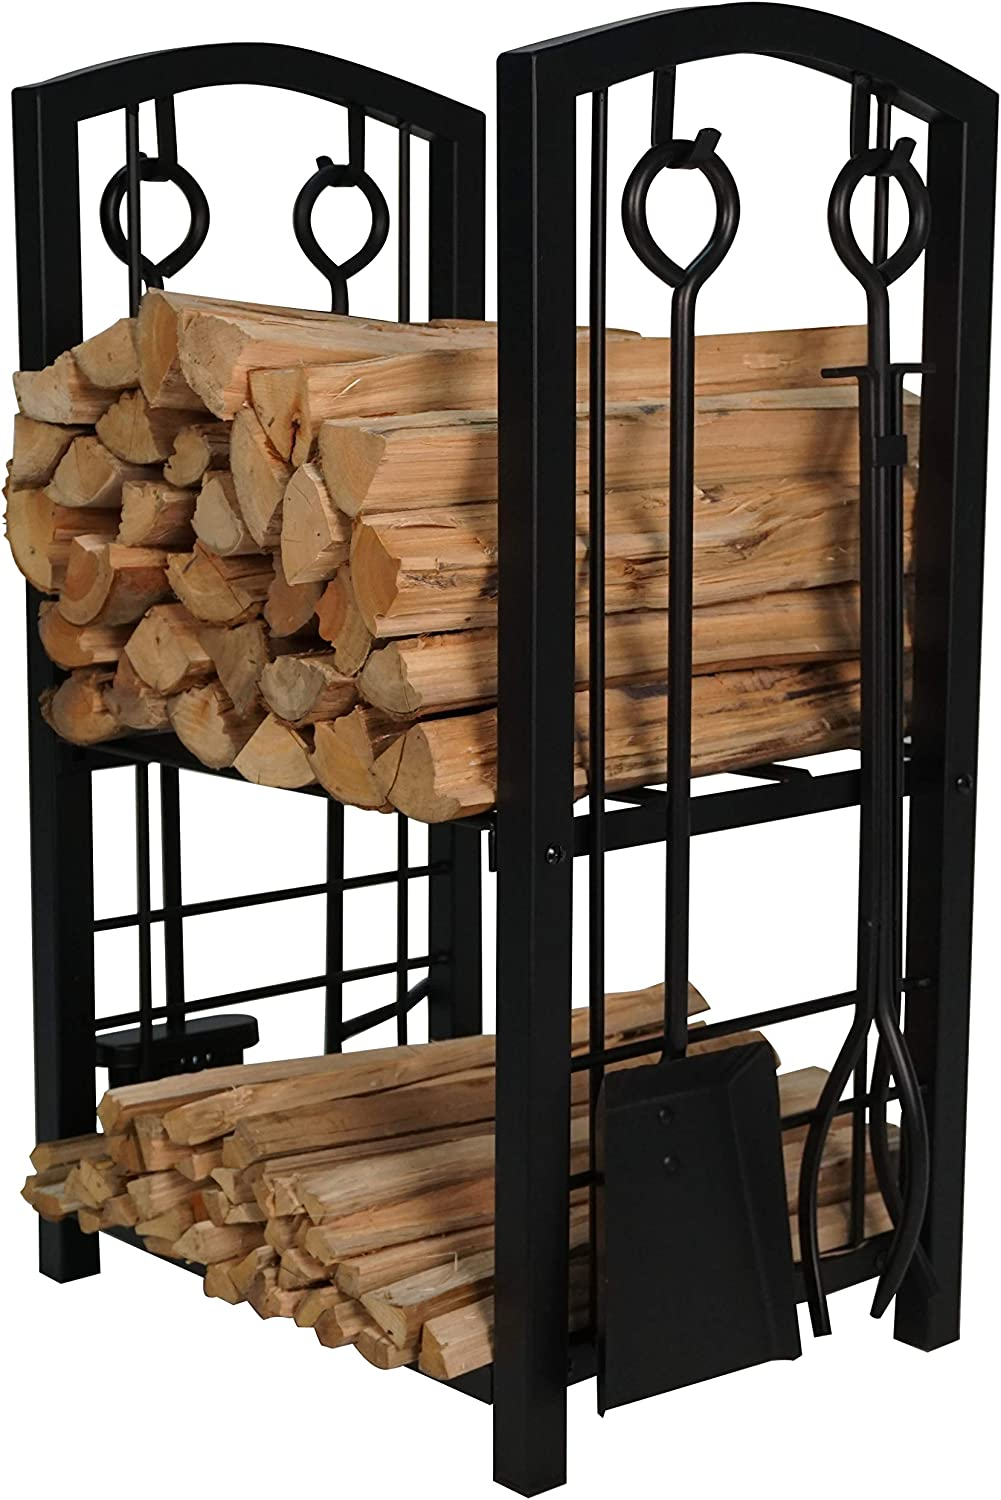 Fire Beauty Fireplace Log Rack with 4 Tools Fireside Firewood Holders Lumber Storage Stacking Black Wrought Iron Heavy Duty Logs Bin Holder for Fireplace Tool